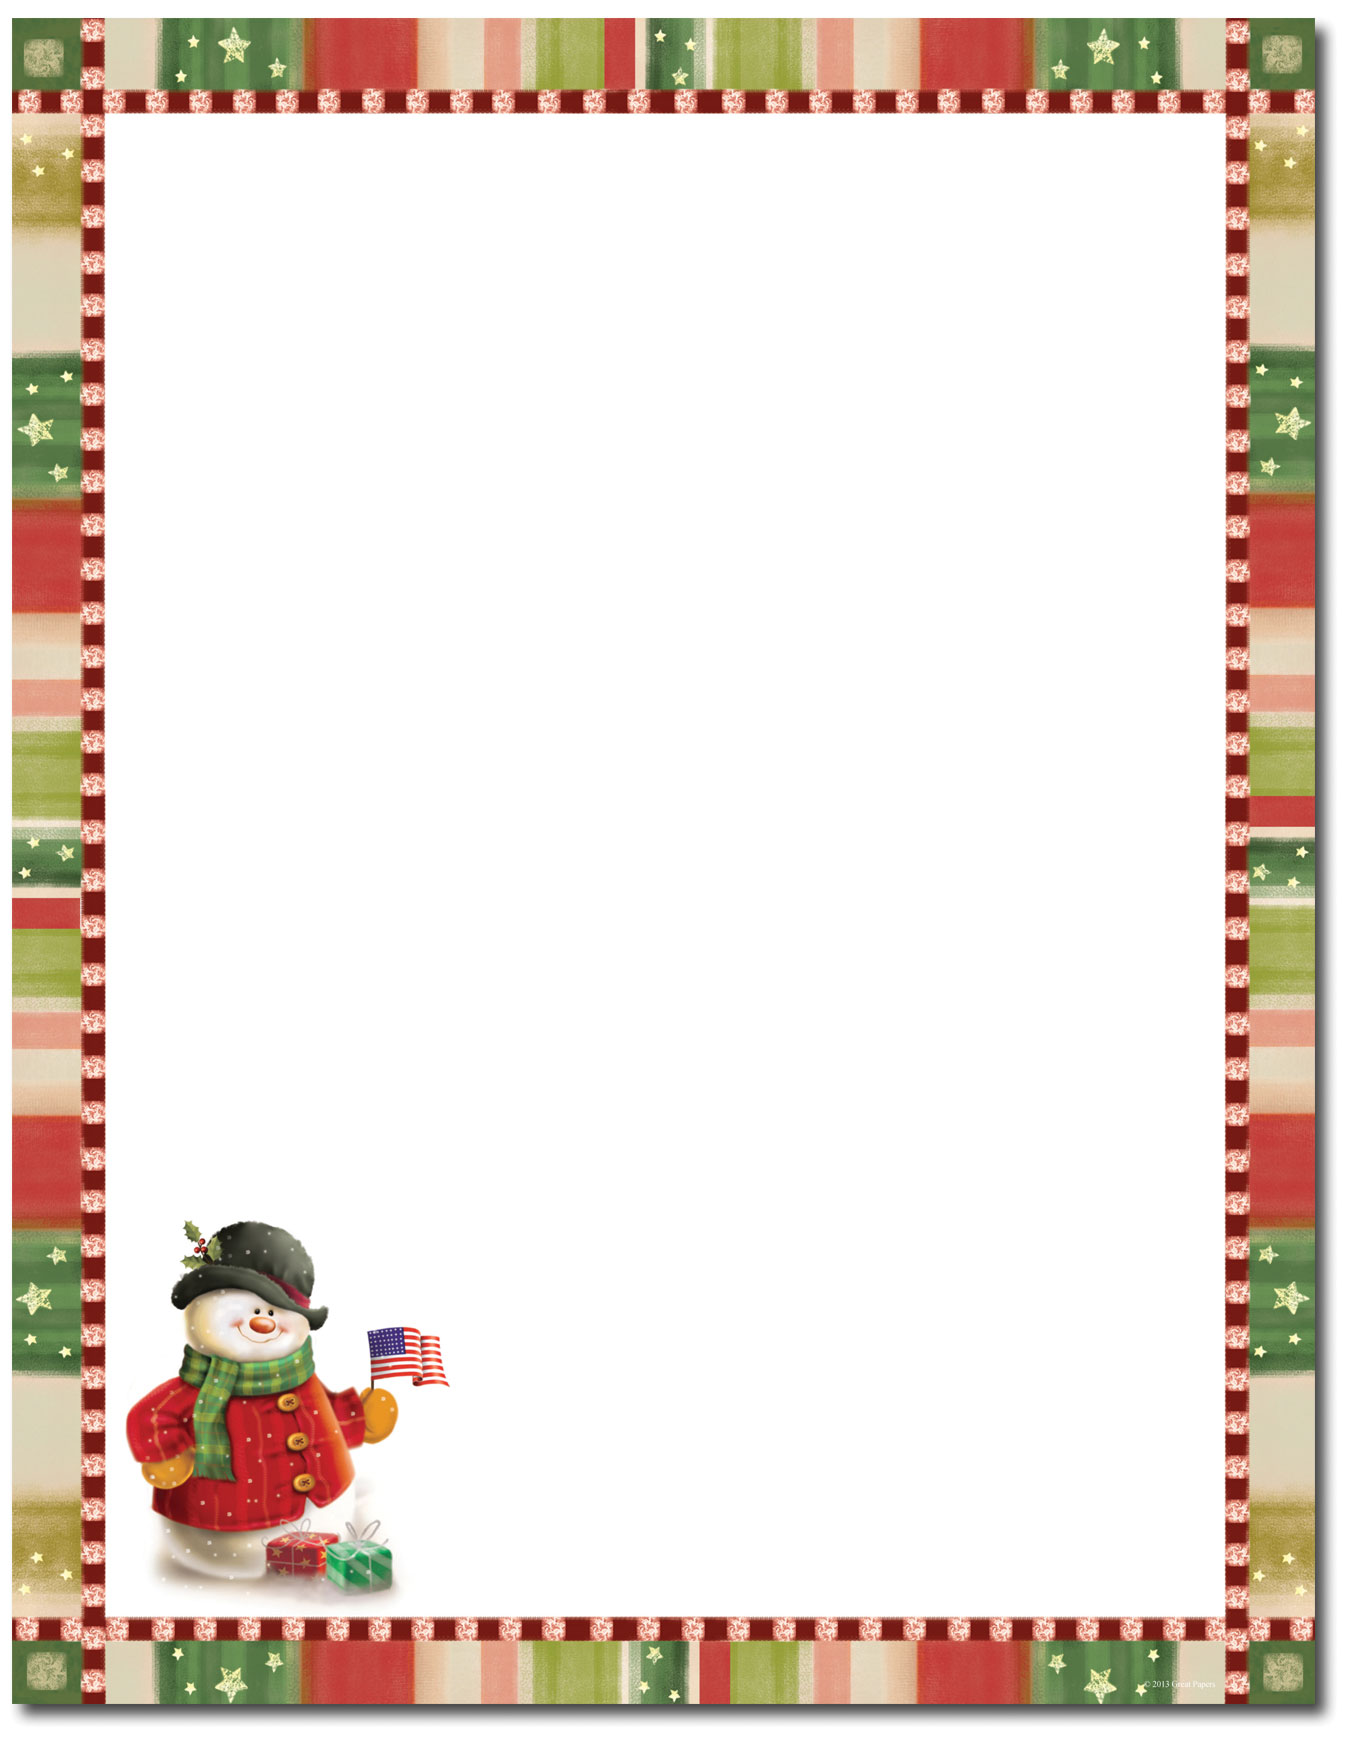 Pics Photos - Stationery Border Of Snowmen And Christmas Icons On ...